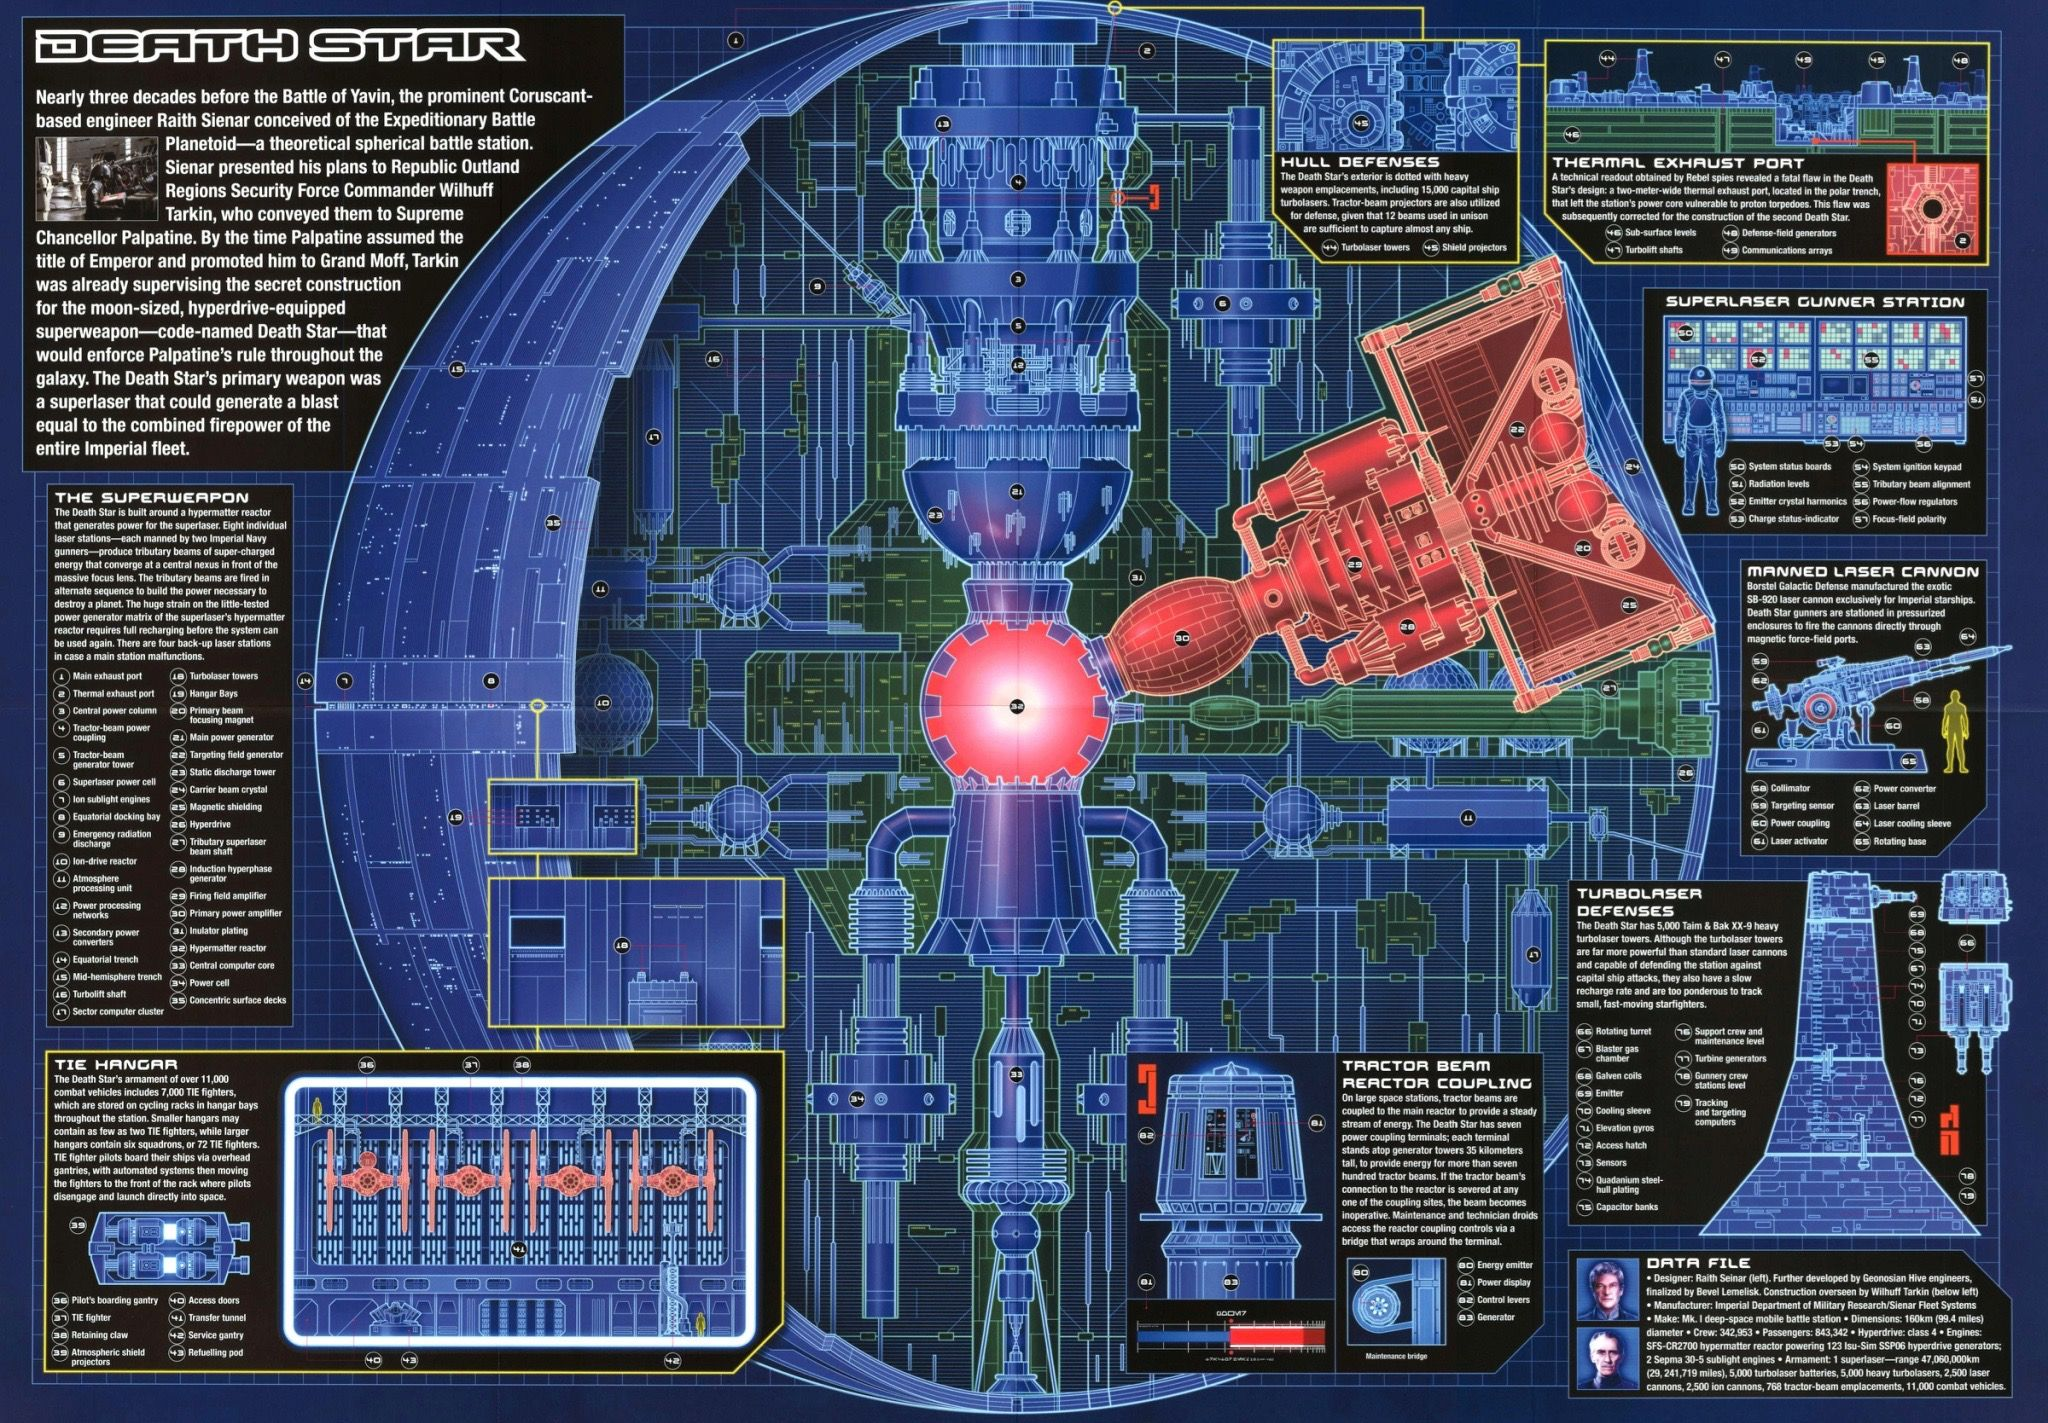 Star Wars Star Wars Ships Star Wars Artwork Star Wars Pictures